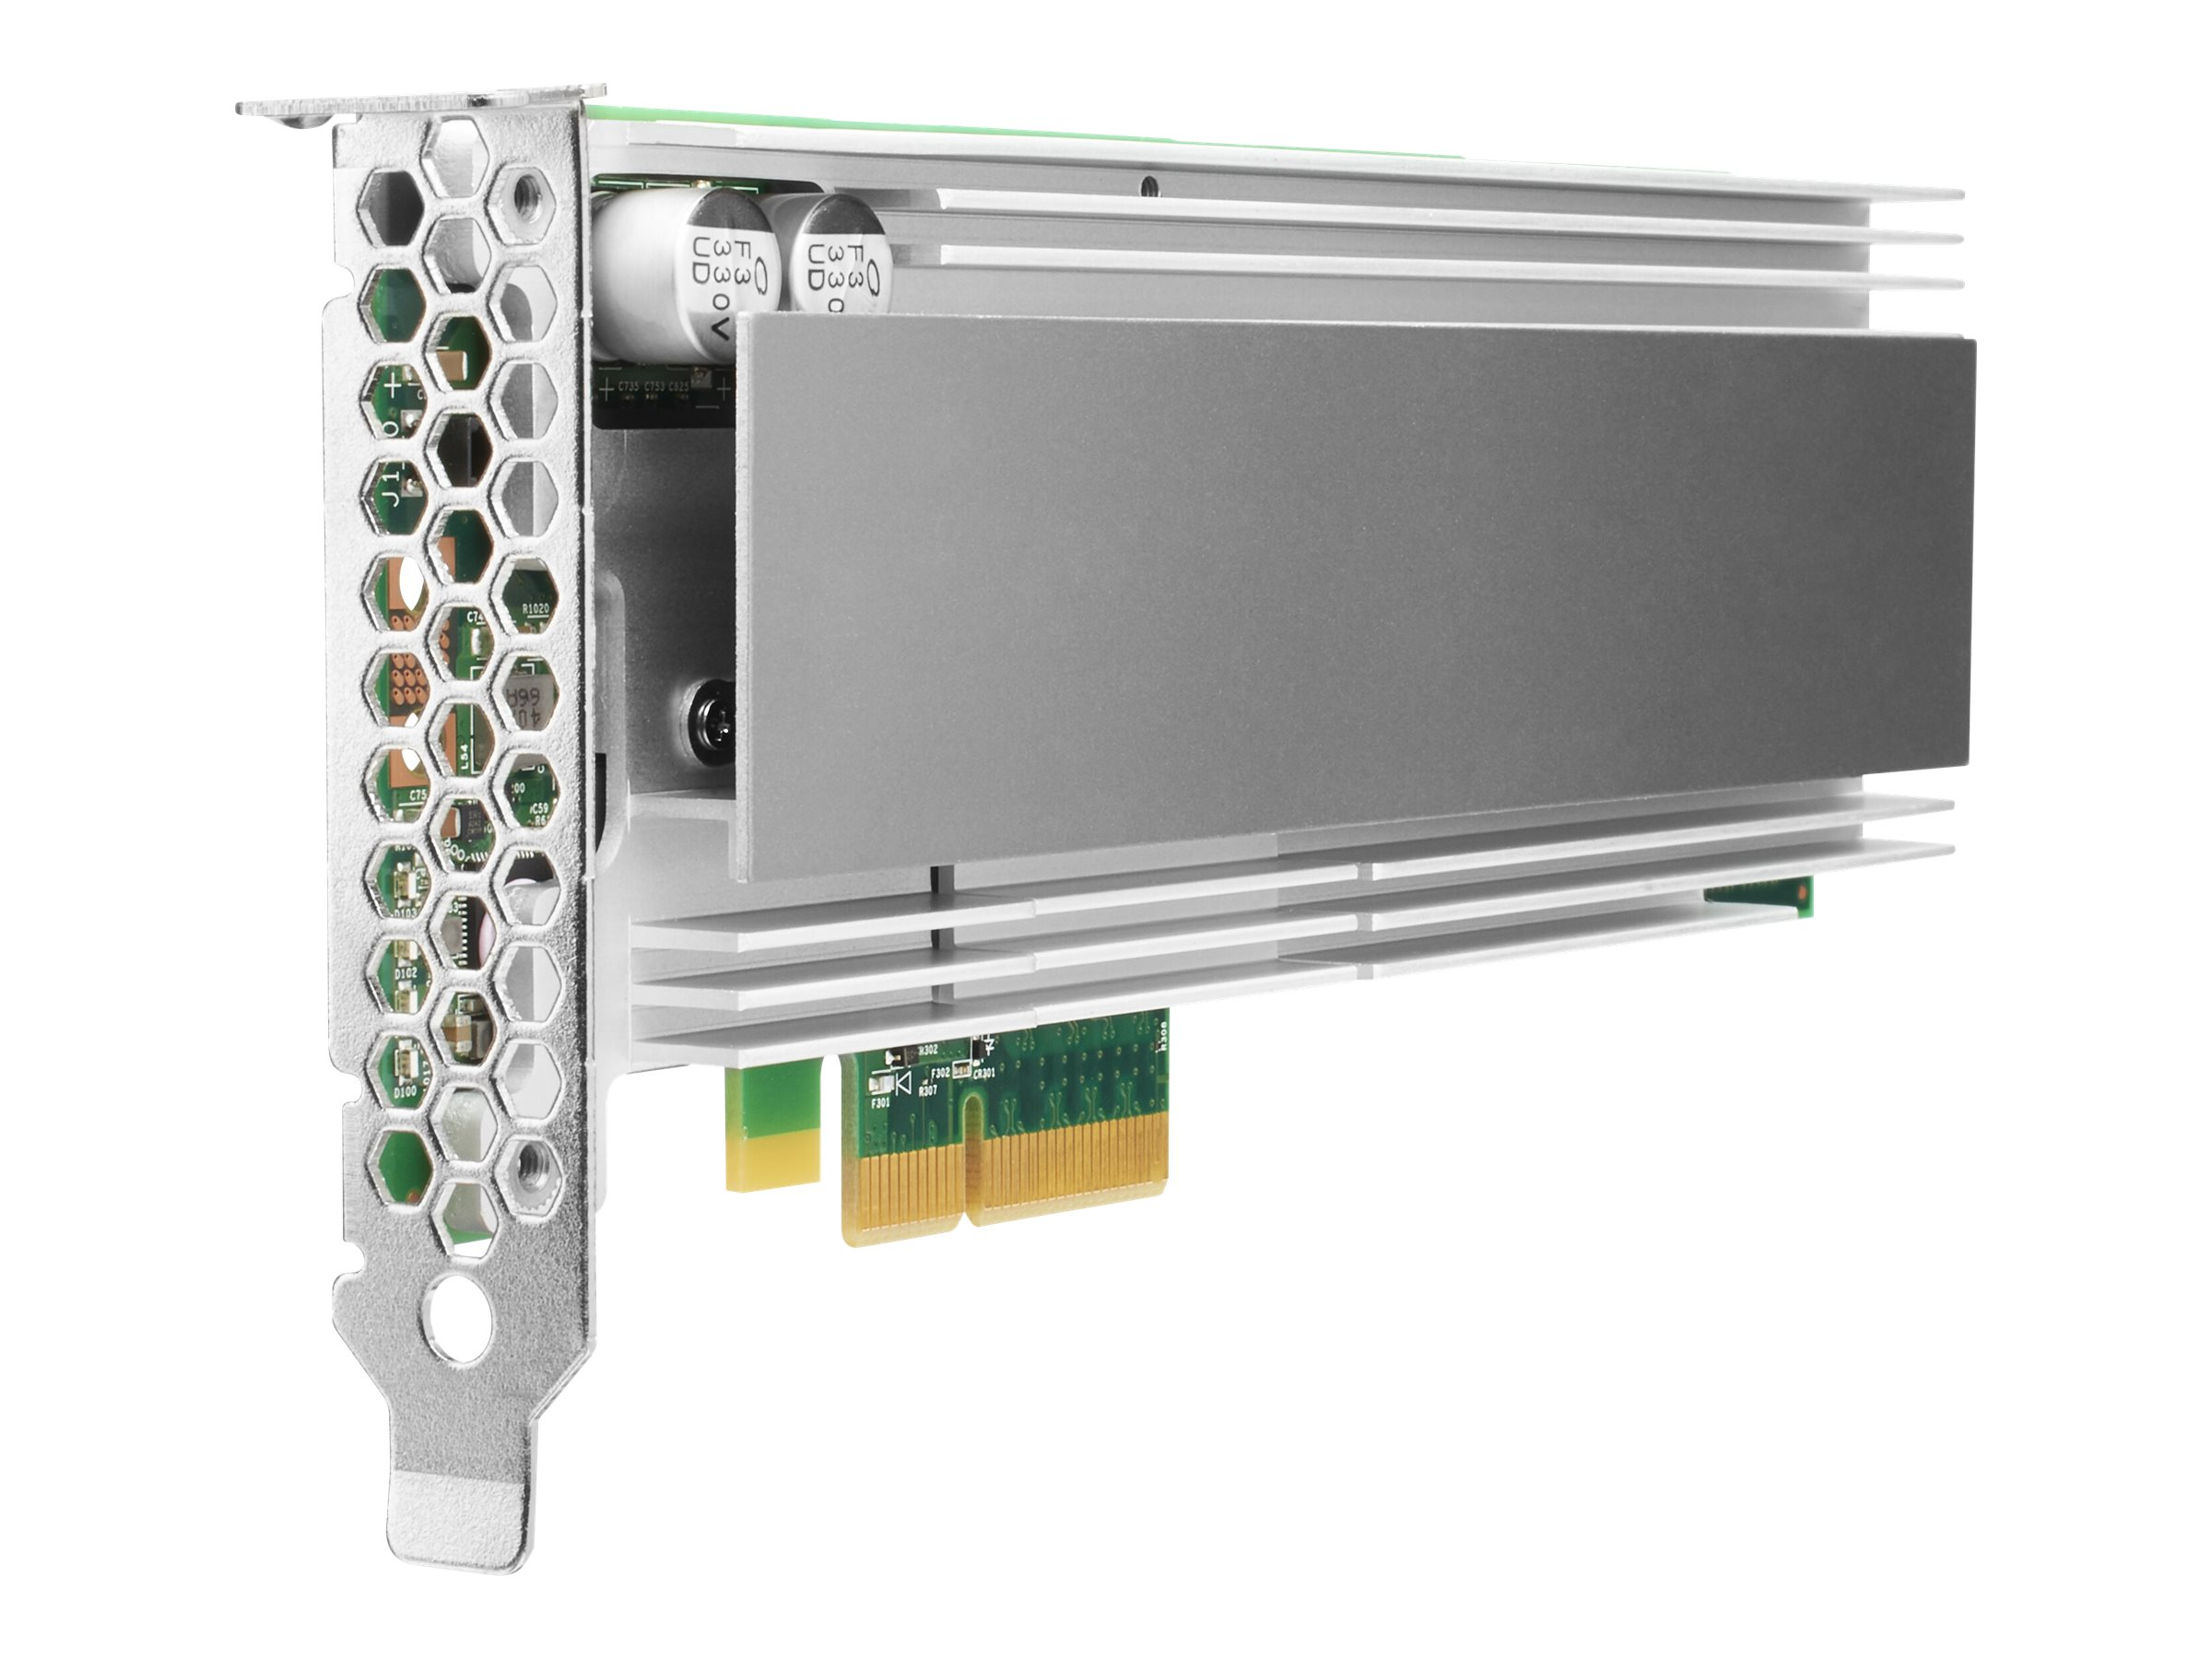 HPE Mixed Use - solid state drive - 3.2 TB - PCI Express x8 (NVMe)